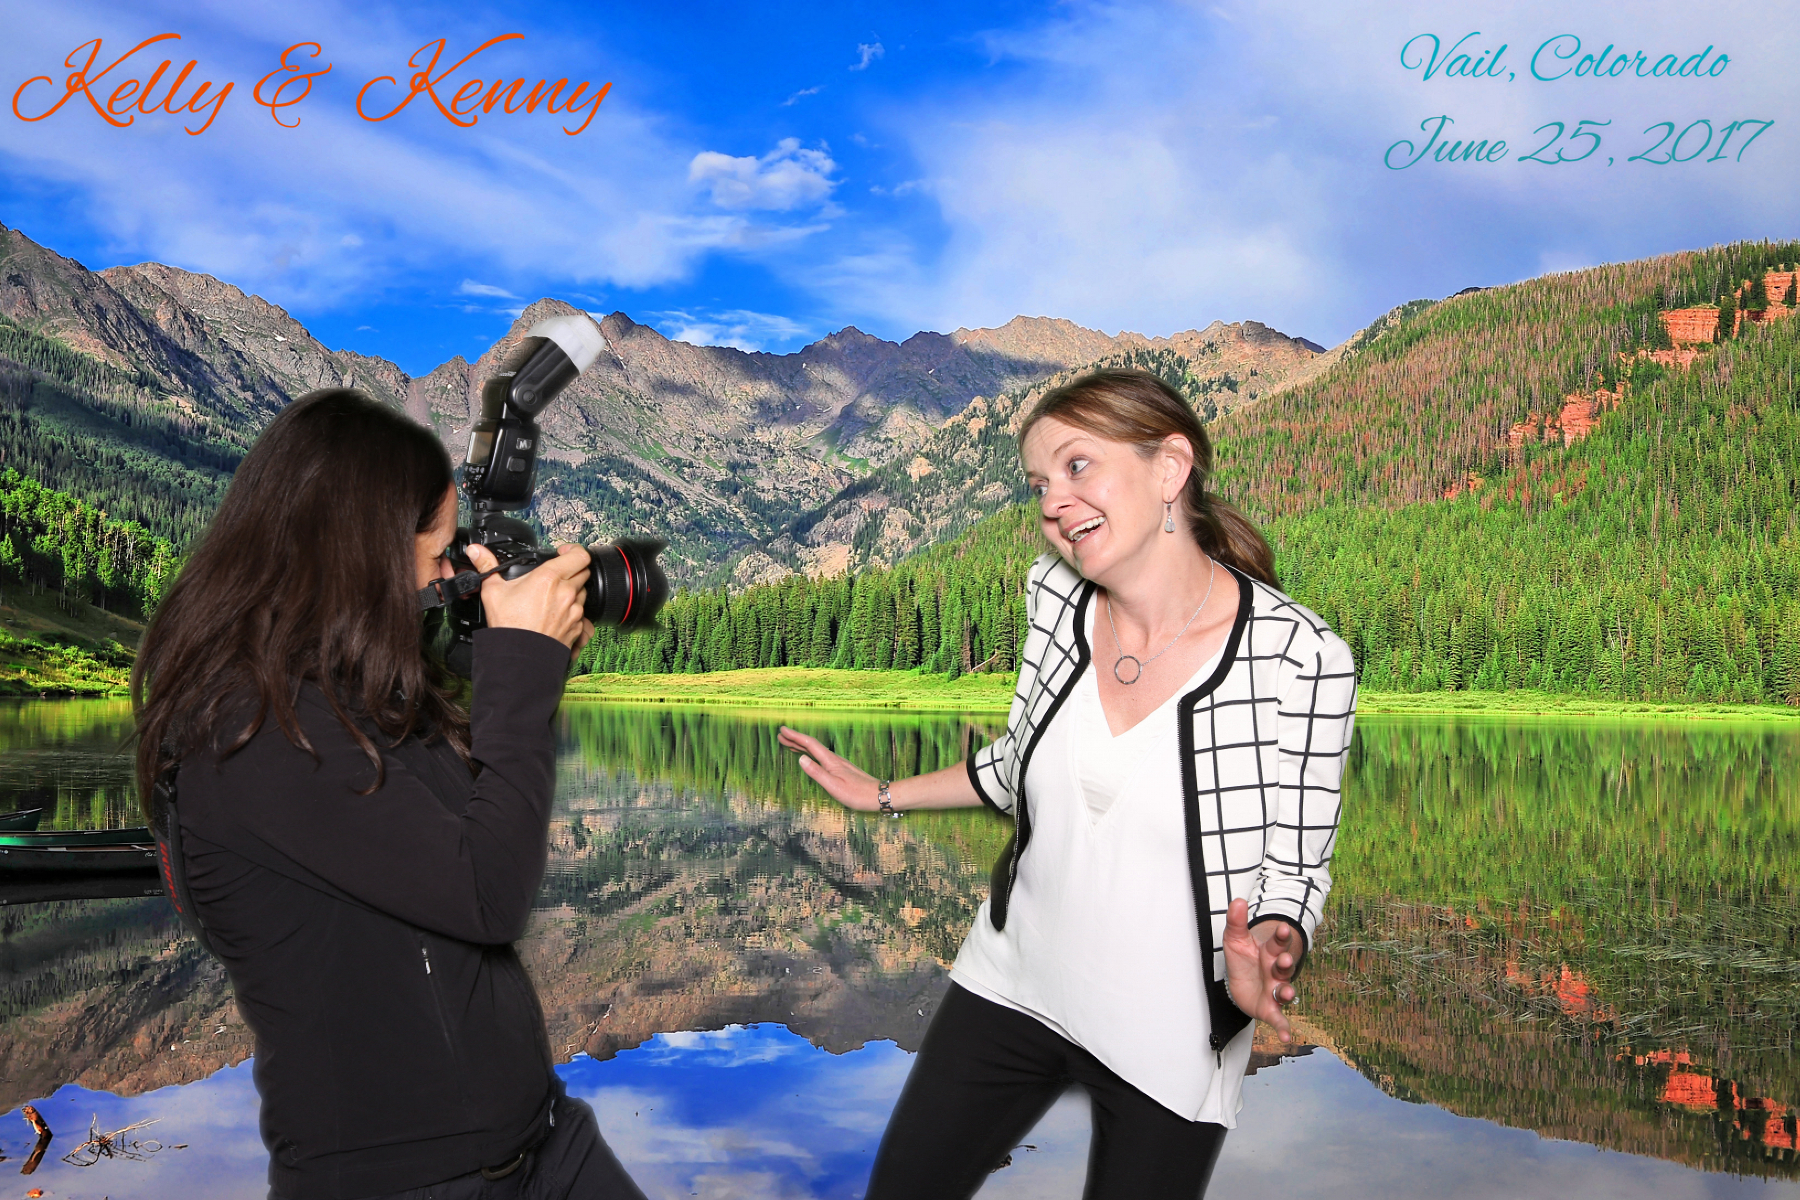 975-Green Screen Photo booth Vail-AXELPHOTO.jpg